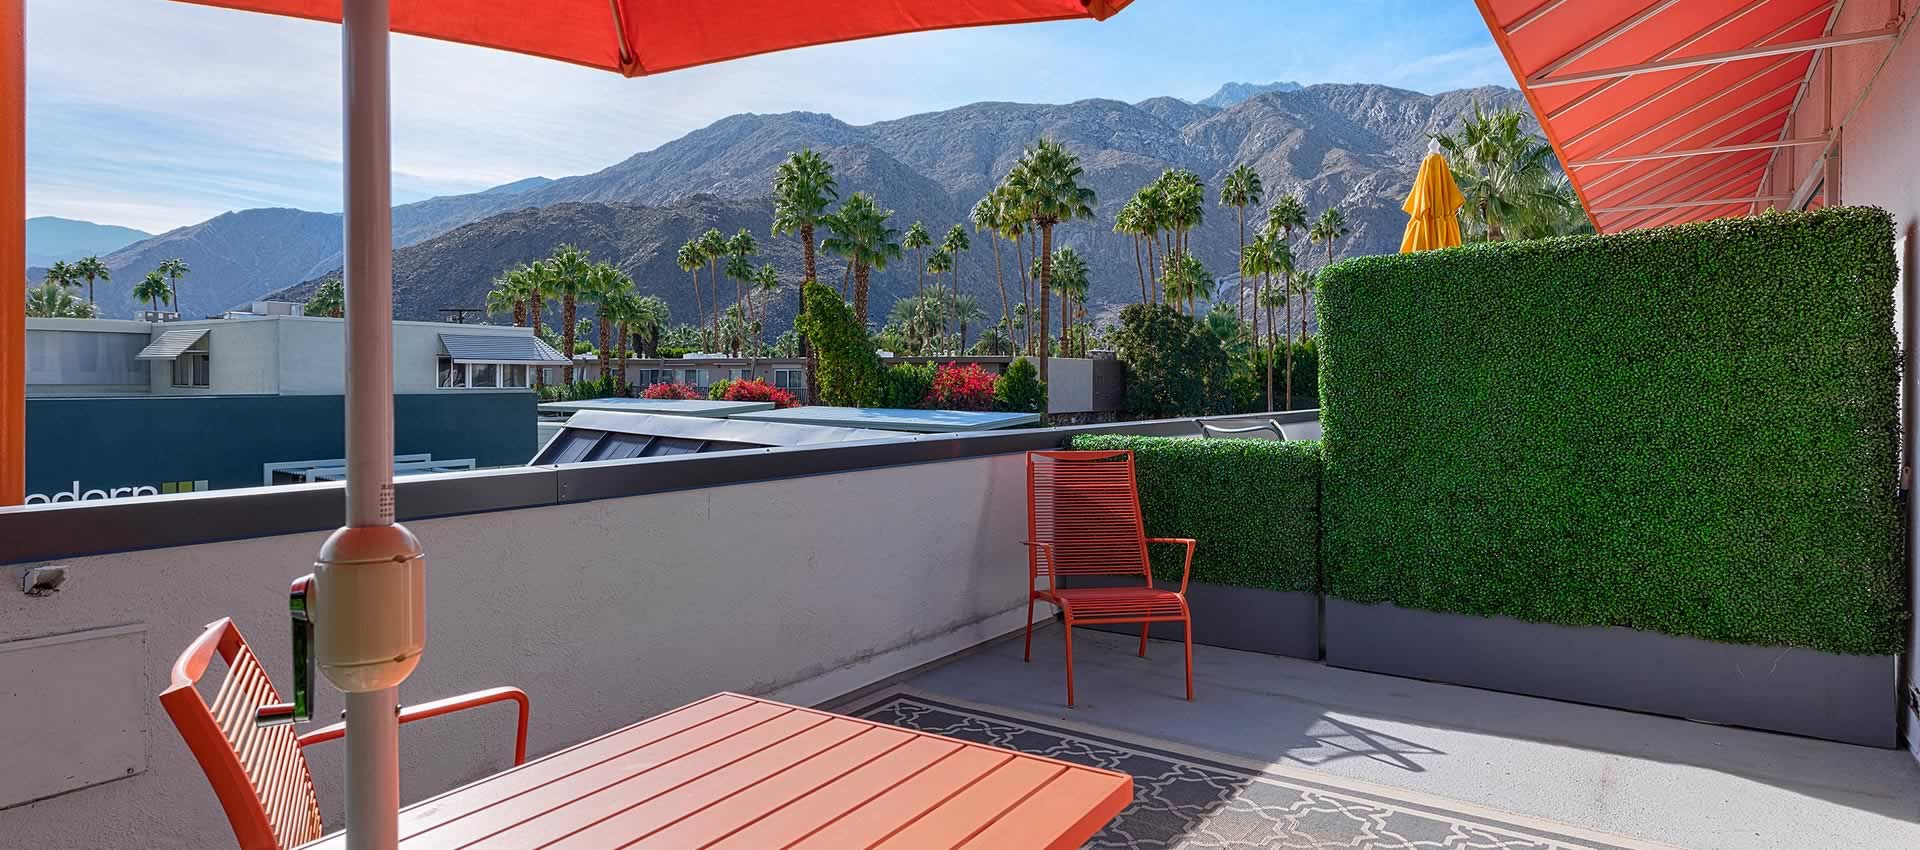 twist hotel room deck view palm trees palm springs